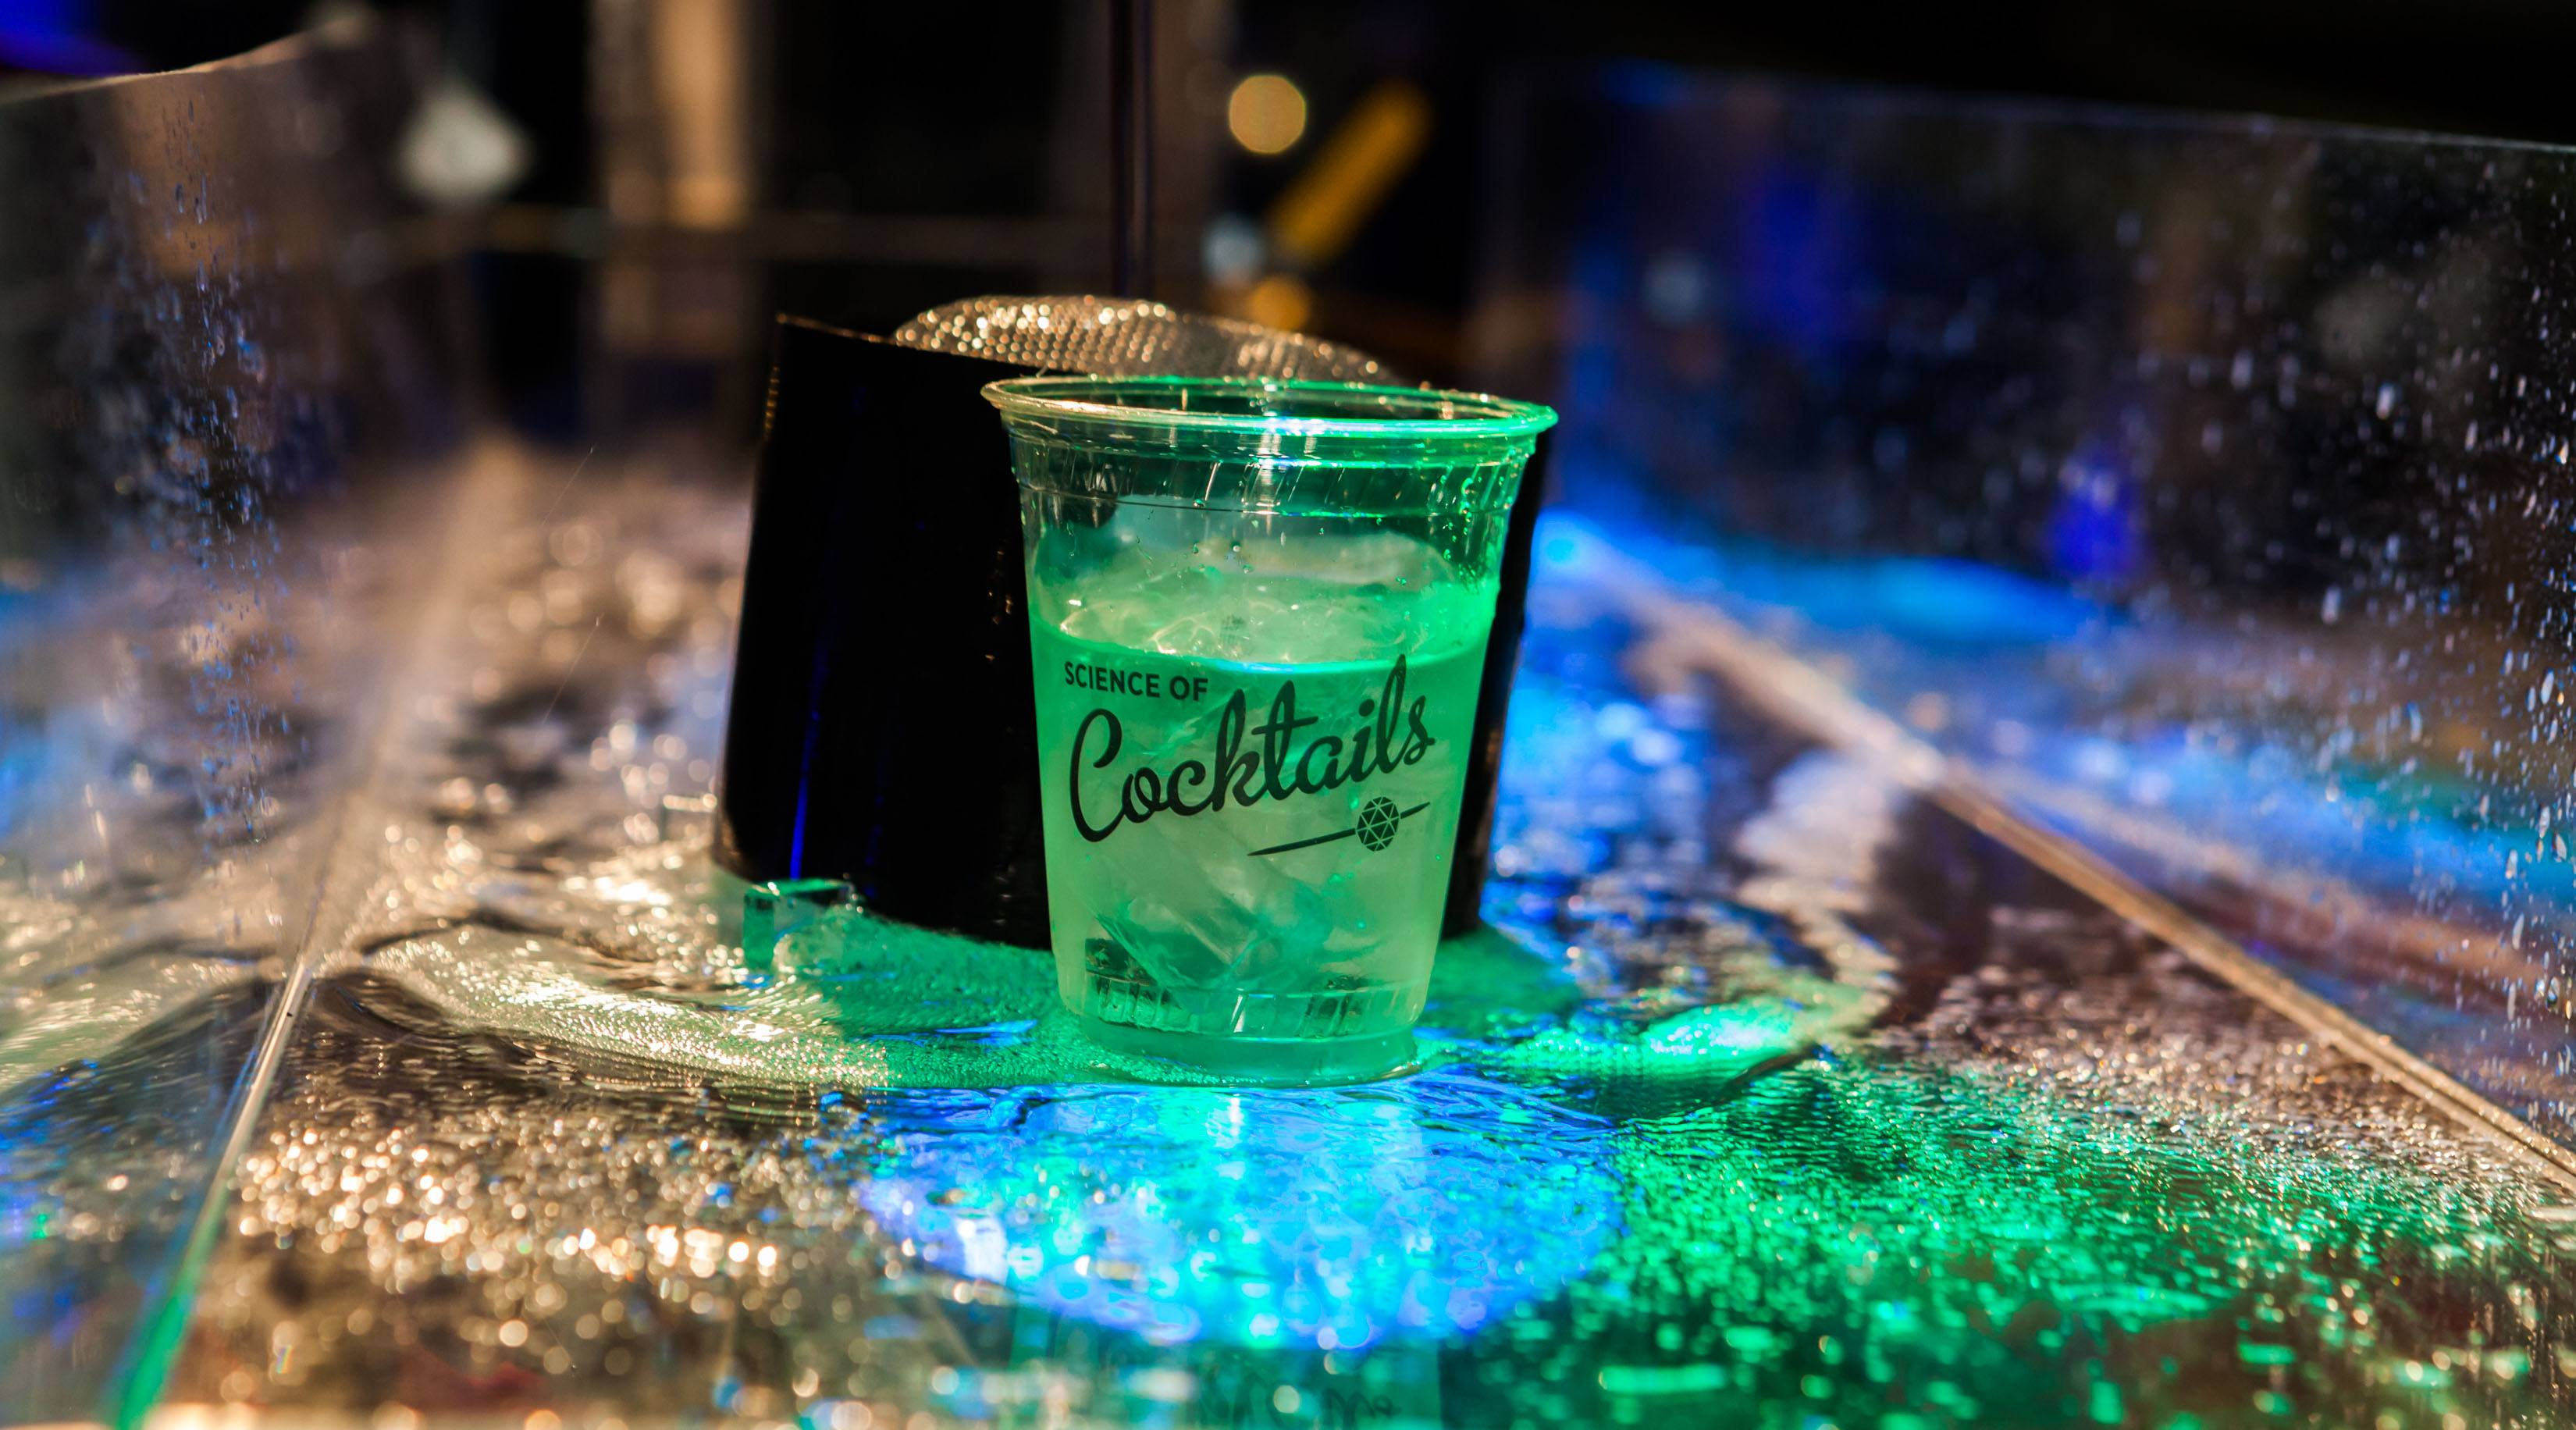 Science of Cocktails raises $240,000 for class field trips to Science World